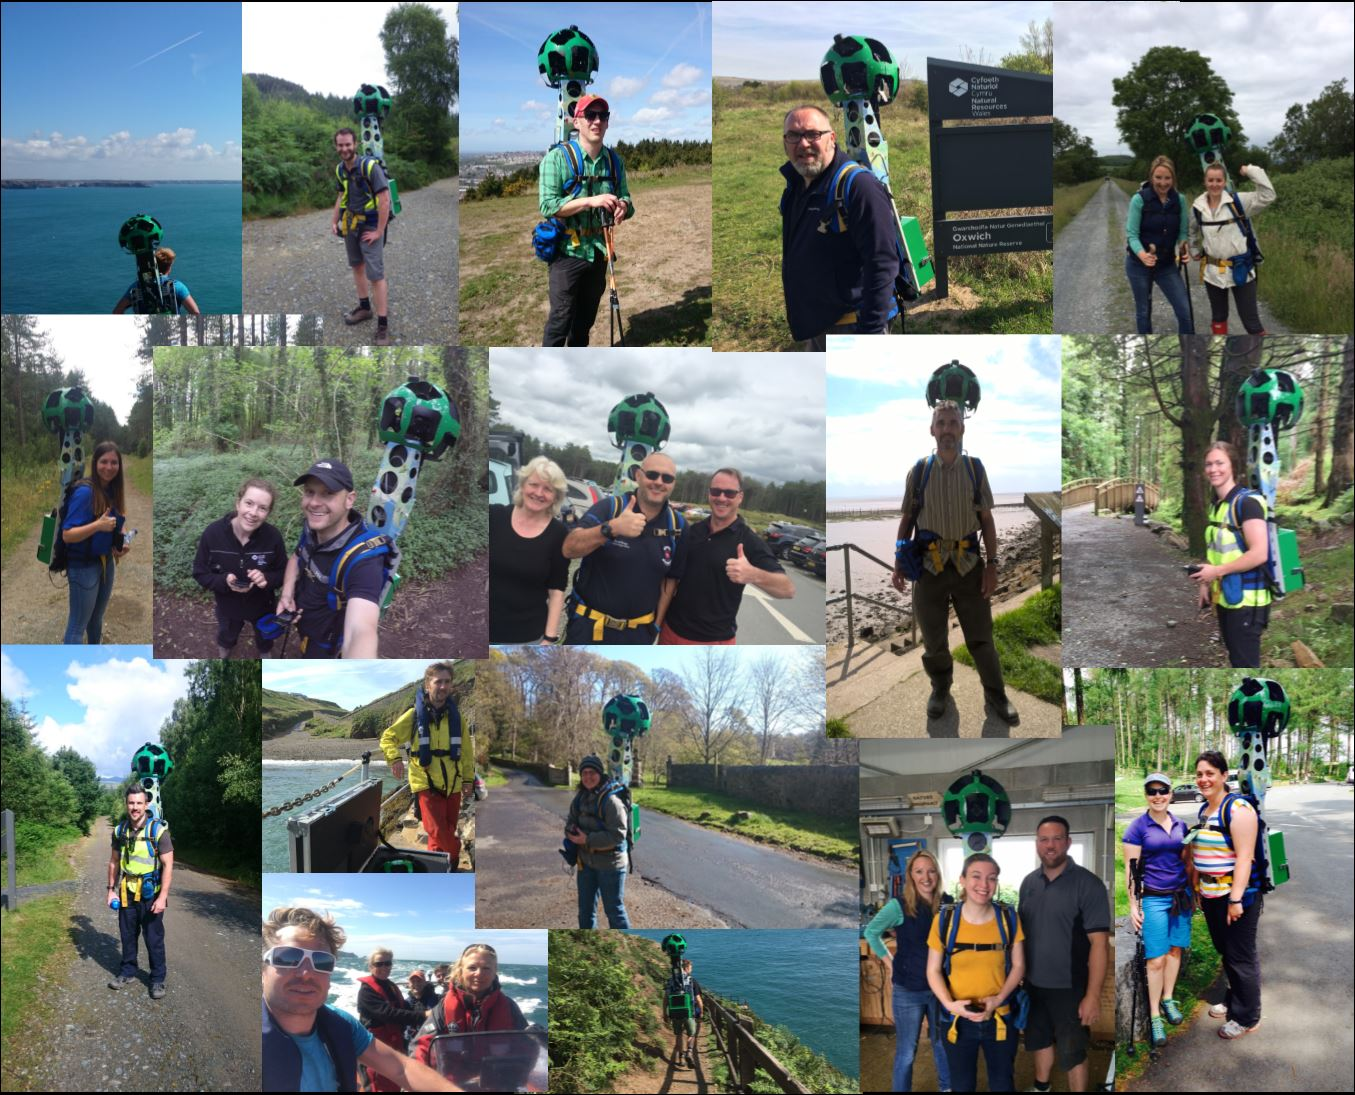 Collage of NRW staff using the Street View Trekker